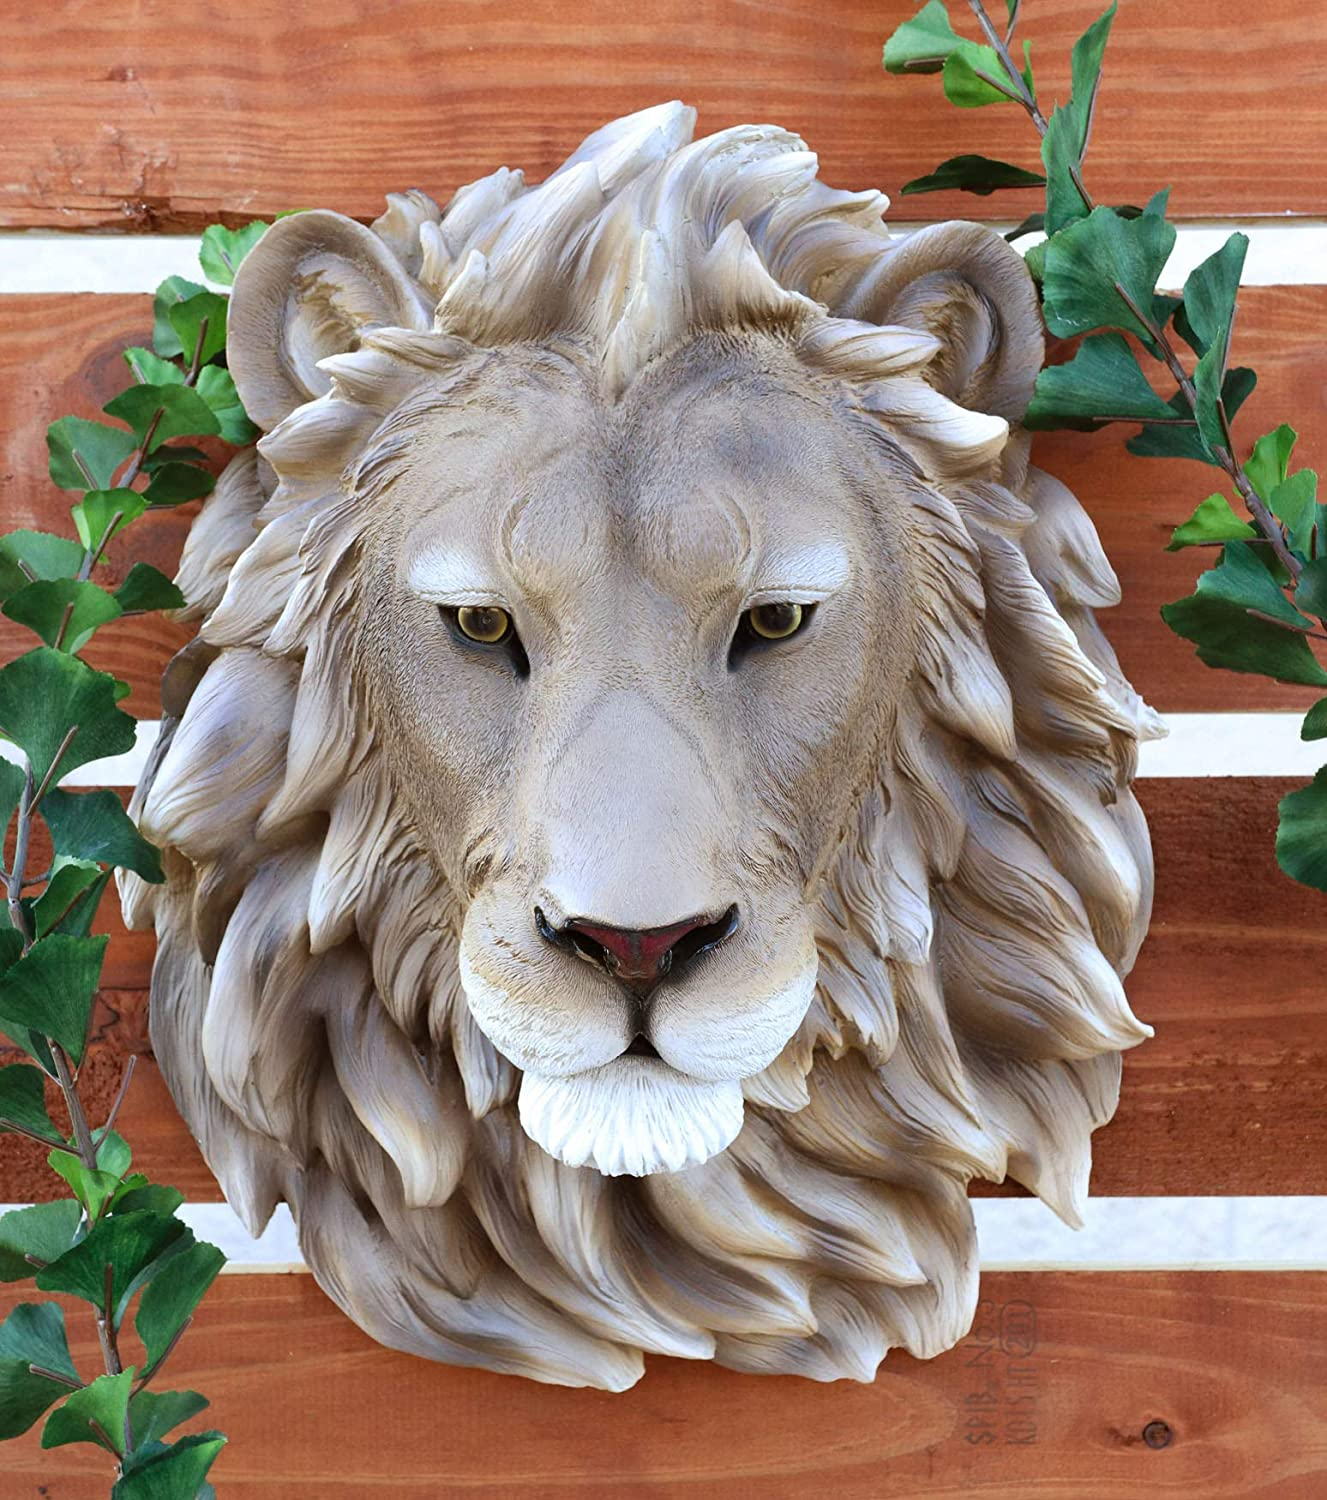 Amazon Com Ebros Mufasa Lion Head Wall Decor Plaque 16 Tall Taxidermy Art Decor Sculpture Alpha Pride Lion King Wall Bust Plaque Home Kitchen